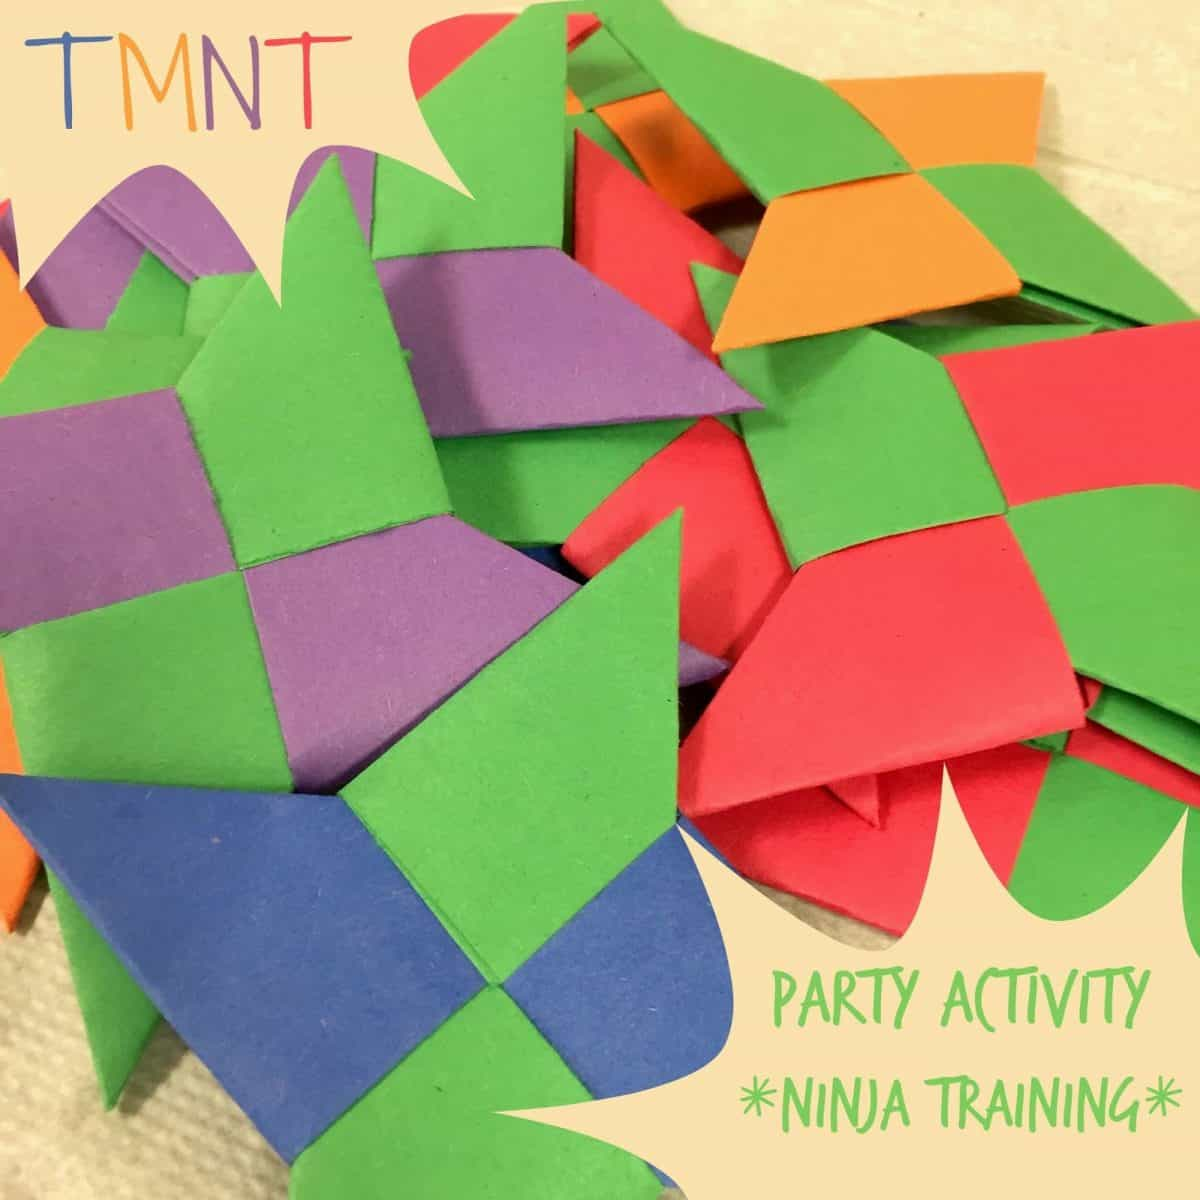 A Teenage Mutant Ninja Turtles Party Activity Enter The Hashi